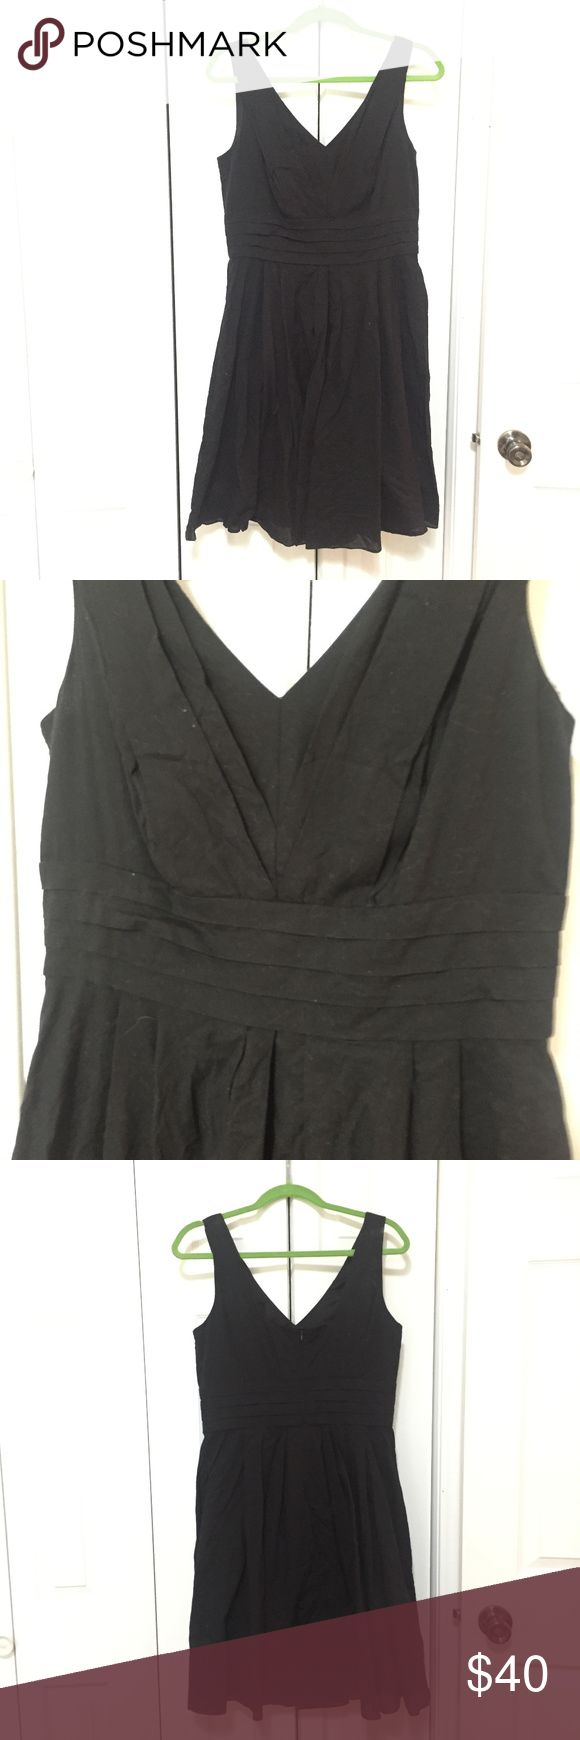 "WHBM Little Black Dress Super cute black dress with pleating on the front and back bodice, with a full gathered skirt, and pleated waist. Good condition, reasoning is I washed instead of dry cleaned which was the recommend cleaning. V-neck front, squared back neck line. Cotton like material. Hits below my knees, and I'm 5'6"". White House Black Market Dresses Midi"